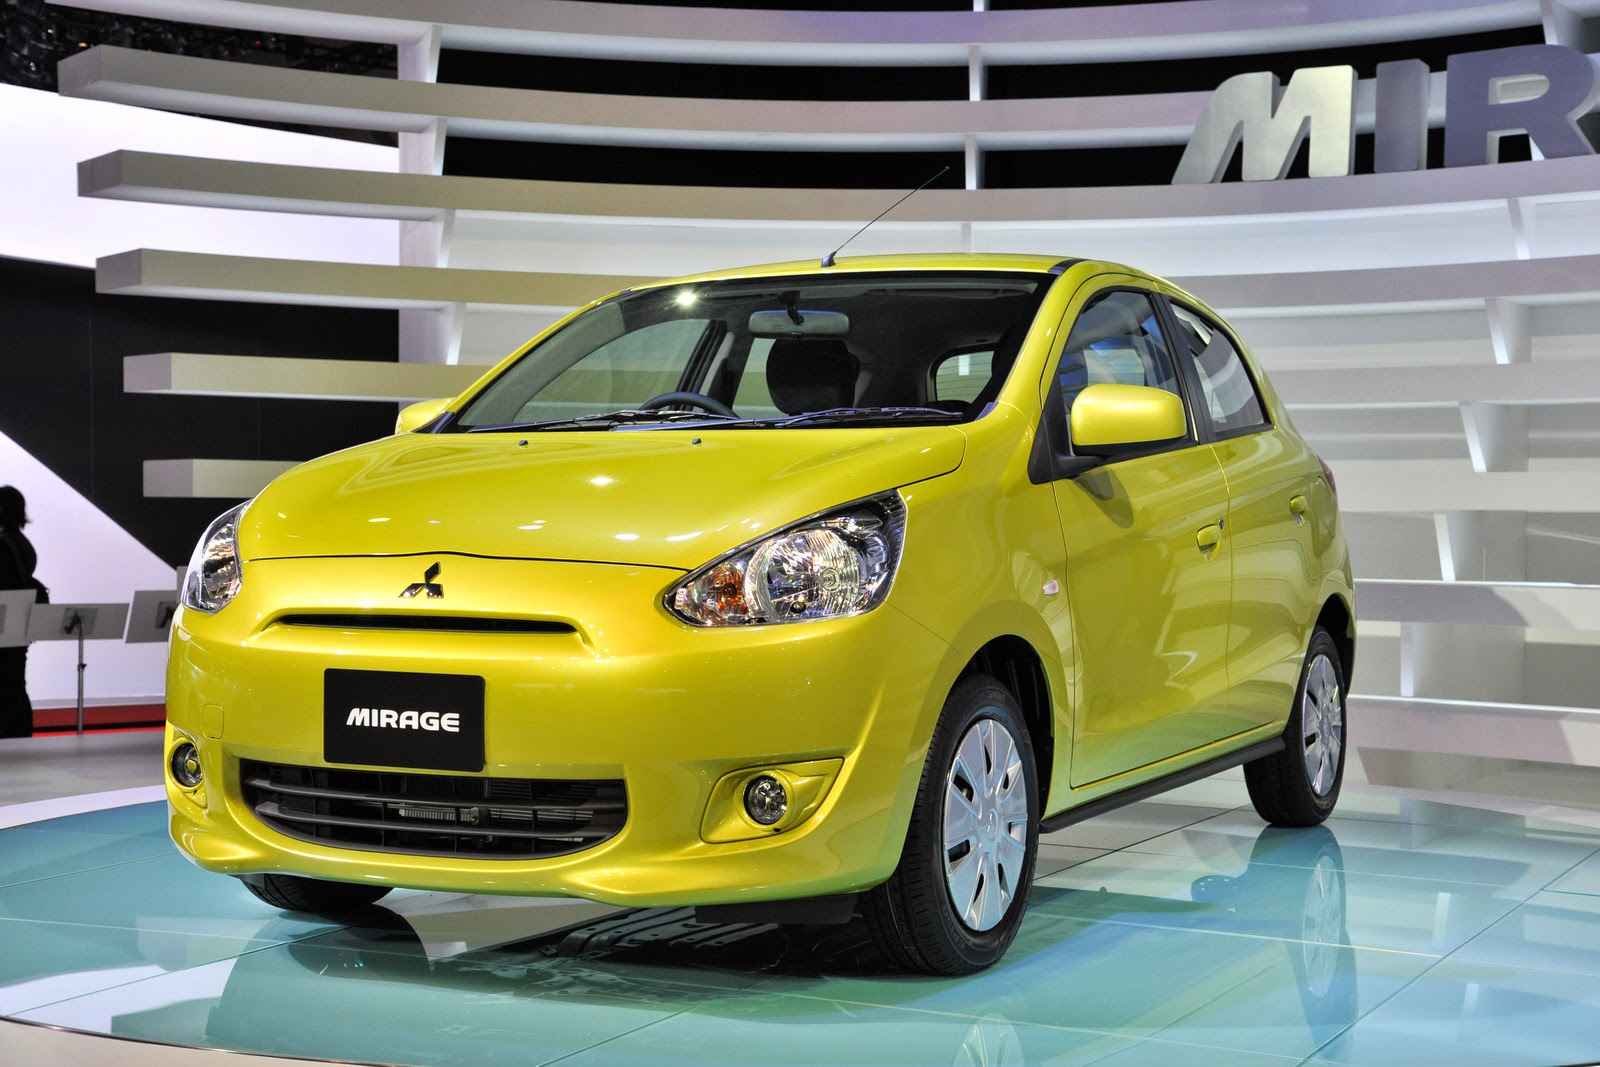 Mitsubishi is ready to launch miragle facelift in 2015